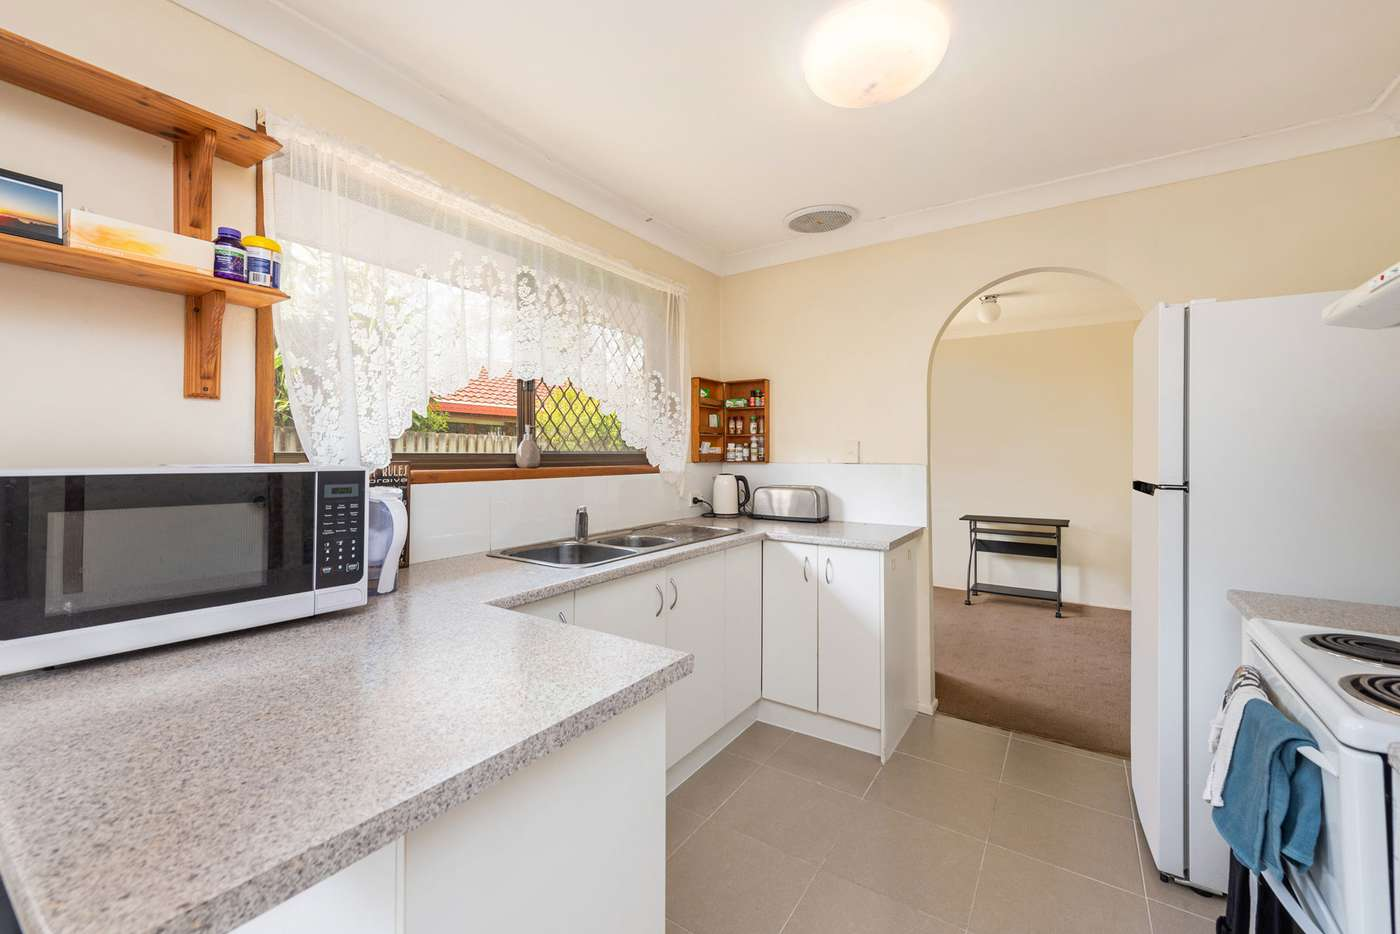 Sixth view of Homely house listing, 22 Honeywell Street, Tingalpa QLD 4173